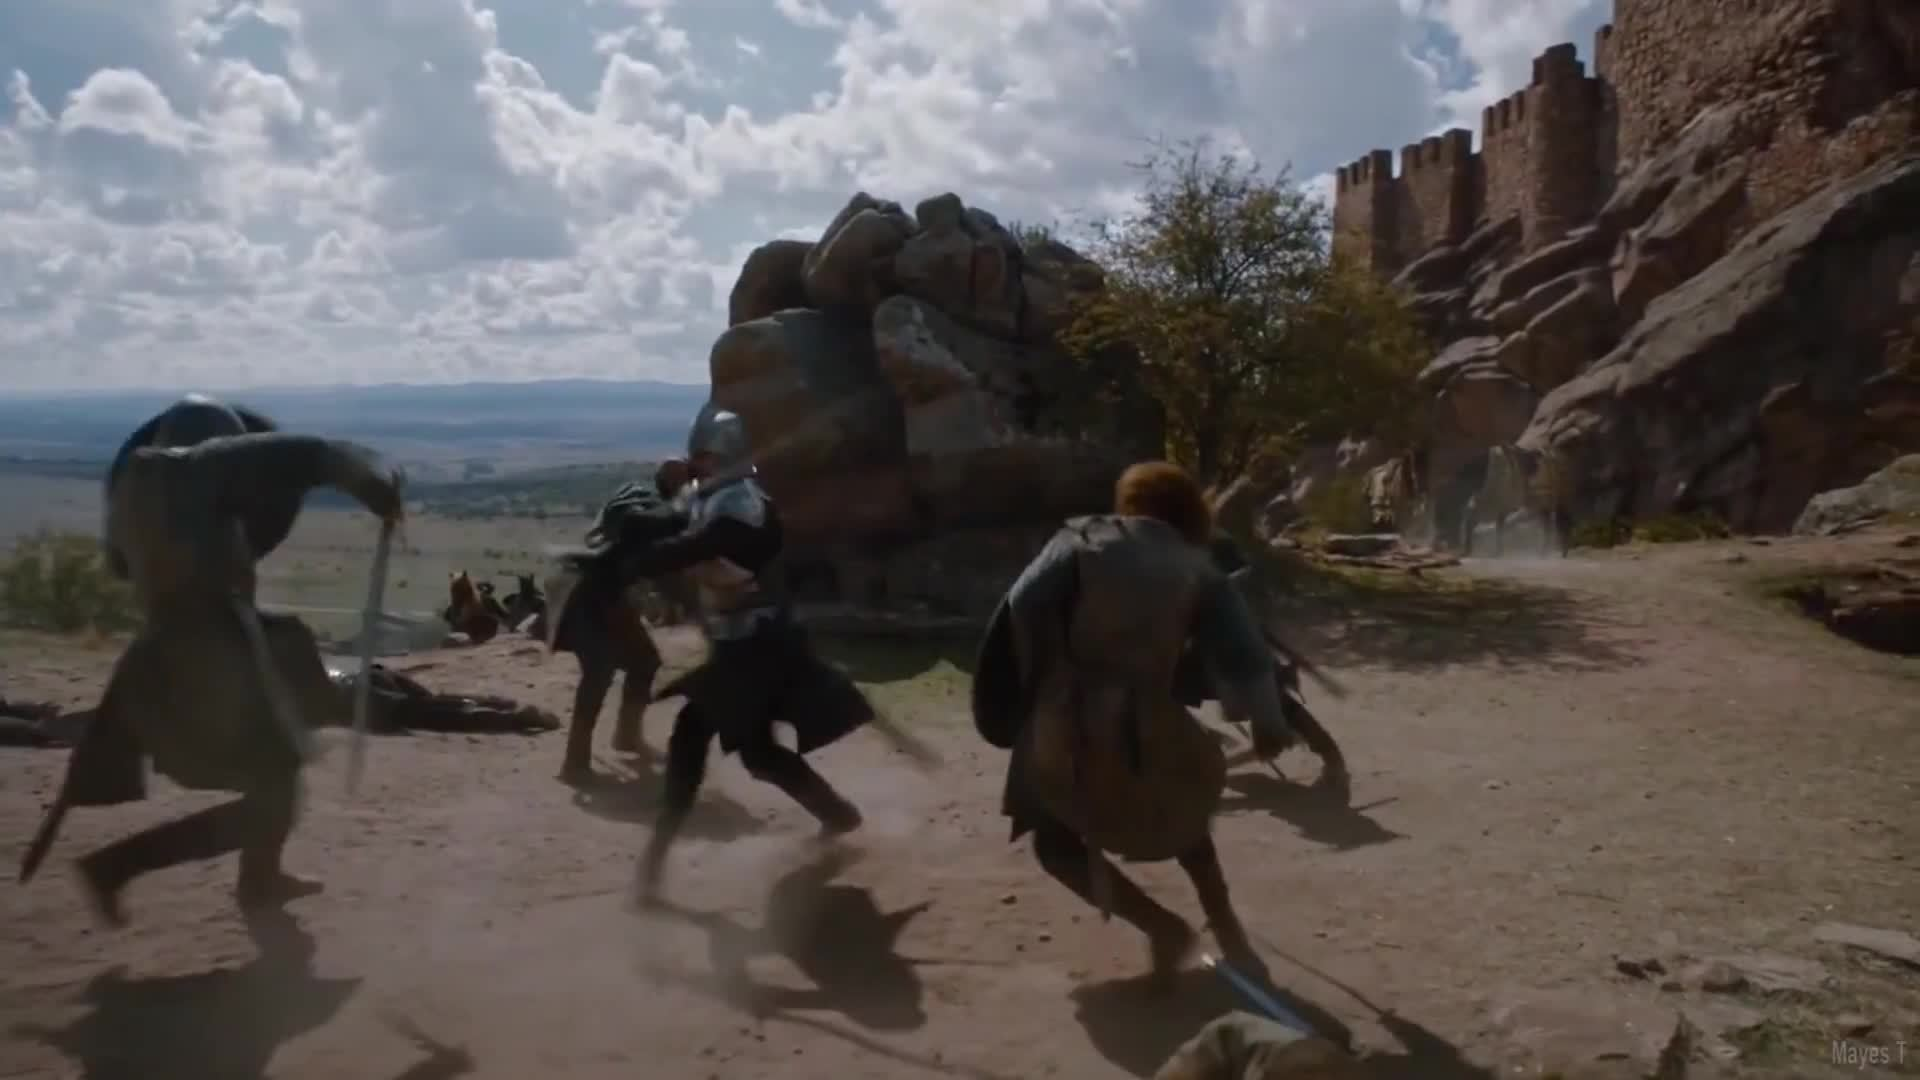 game, game of thrones, got, hbo, of, thrones;, Game of Thrones S06E03 - The Tower Of Joy (Full Scene) GIFs